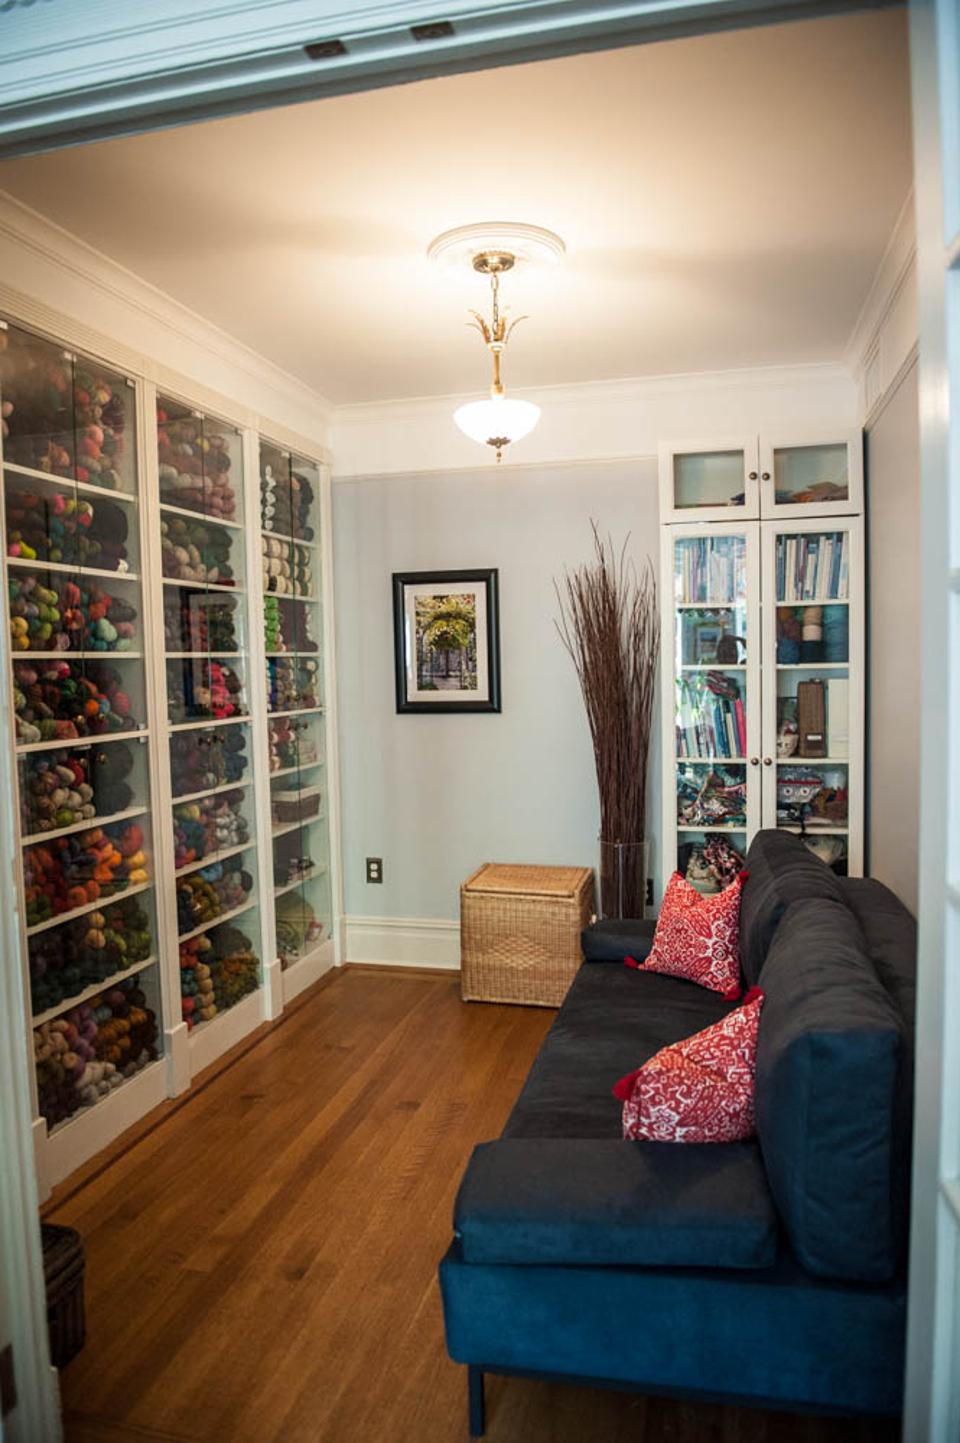 A room with shelves of yarn and a blue sofa.